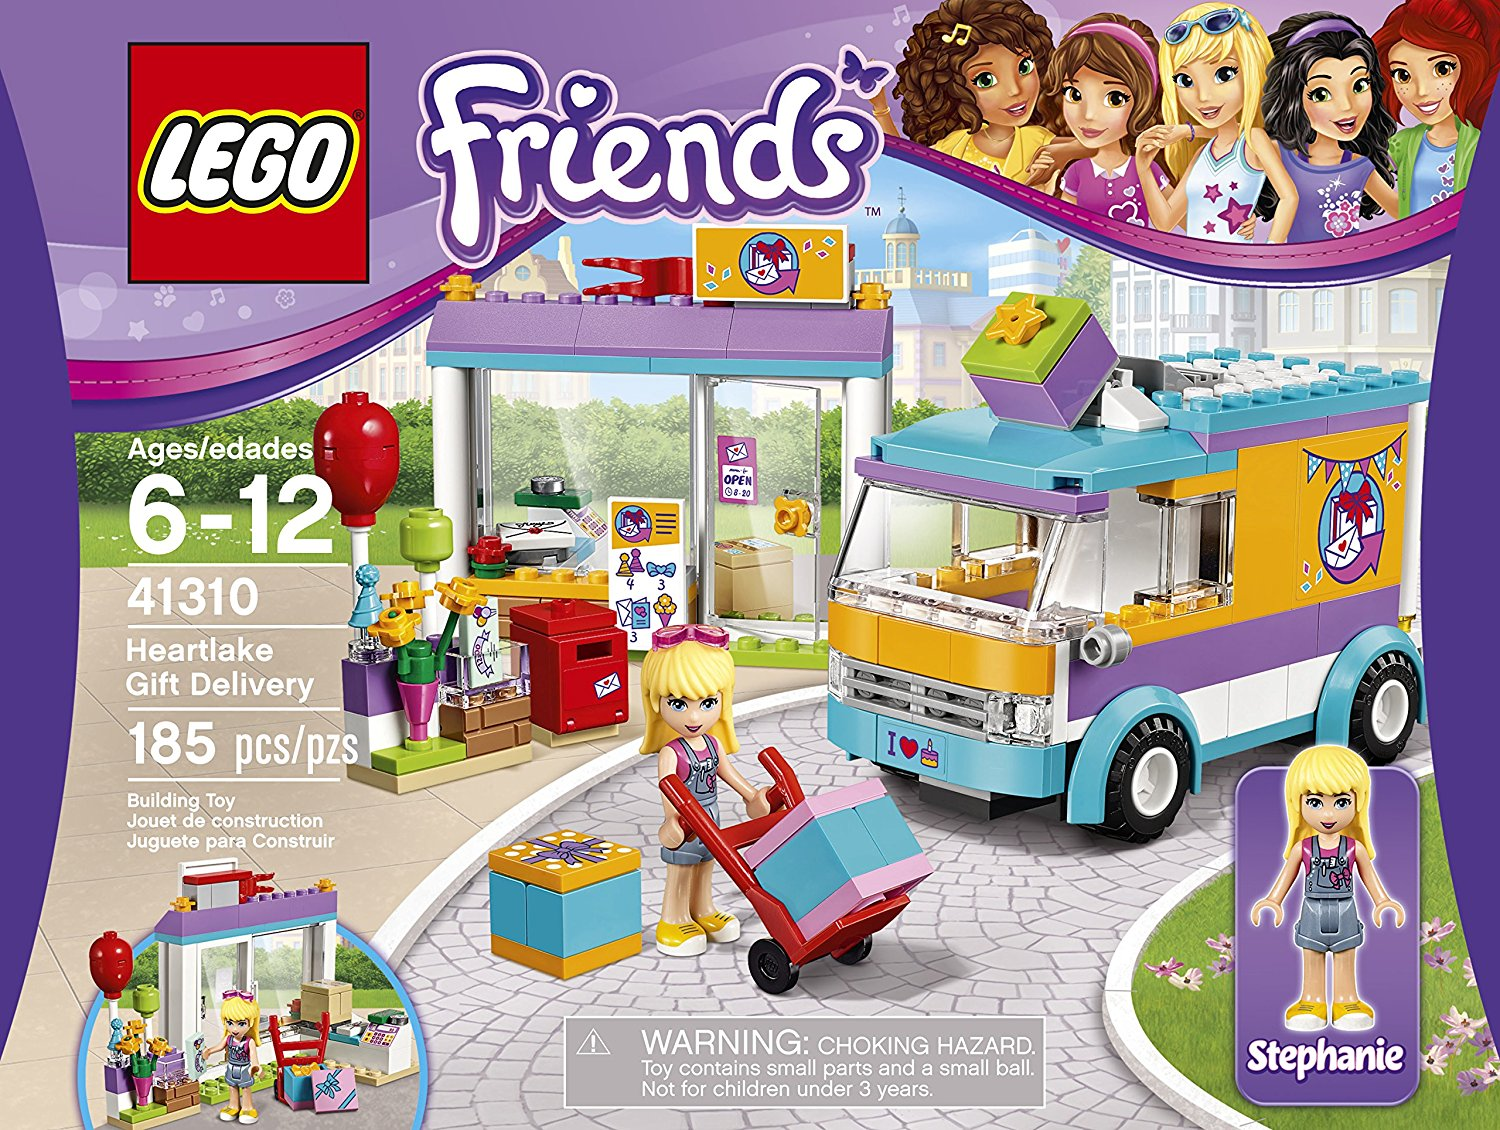 2 lego friends holiday gift ideas for children